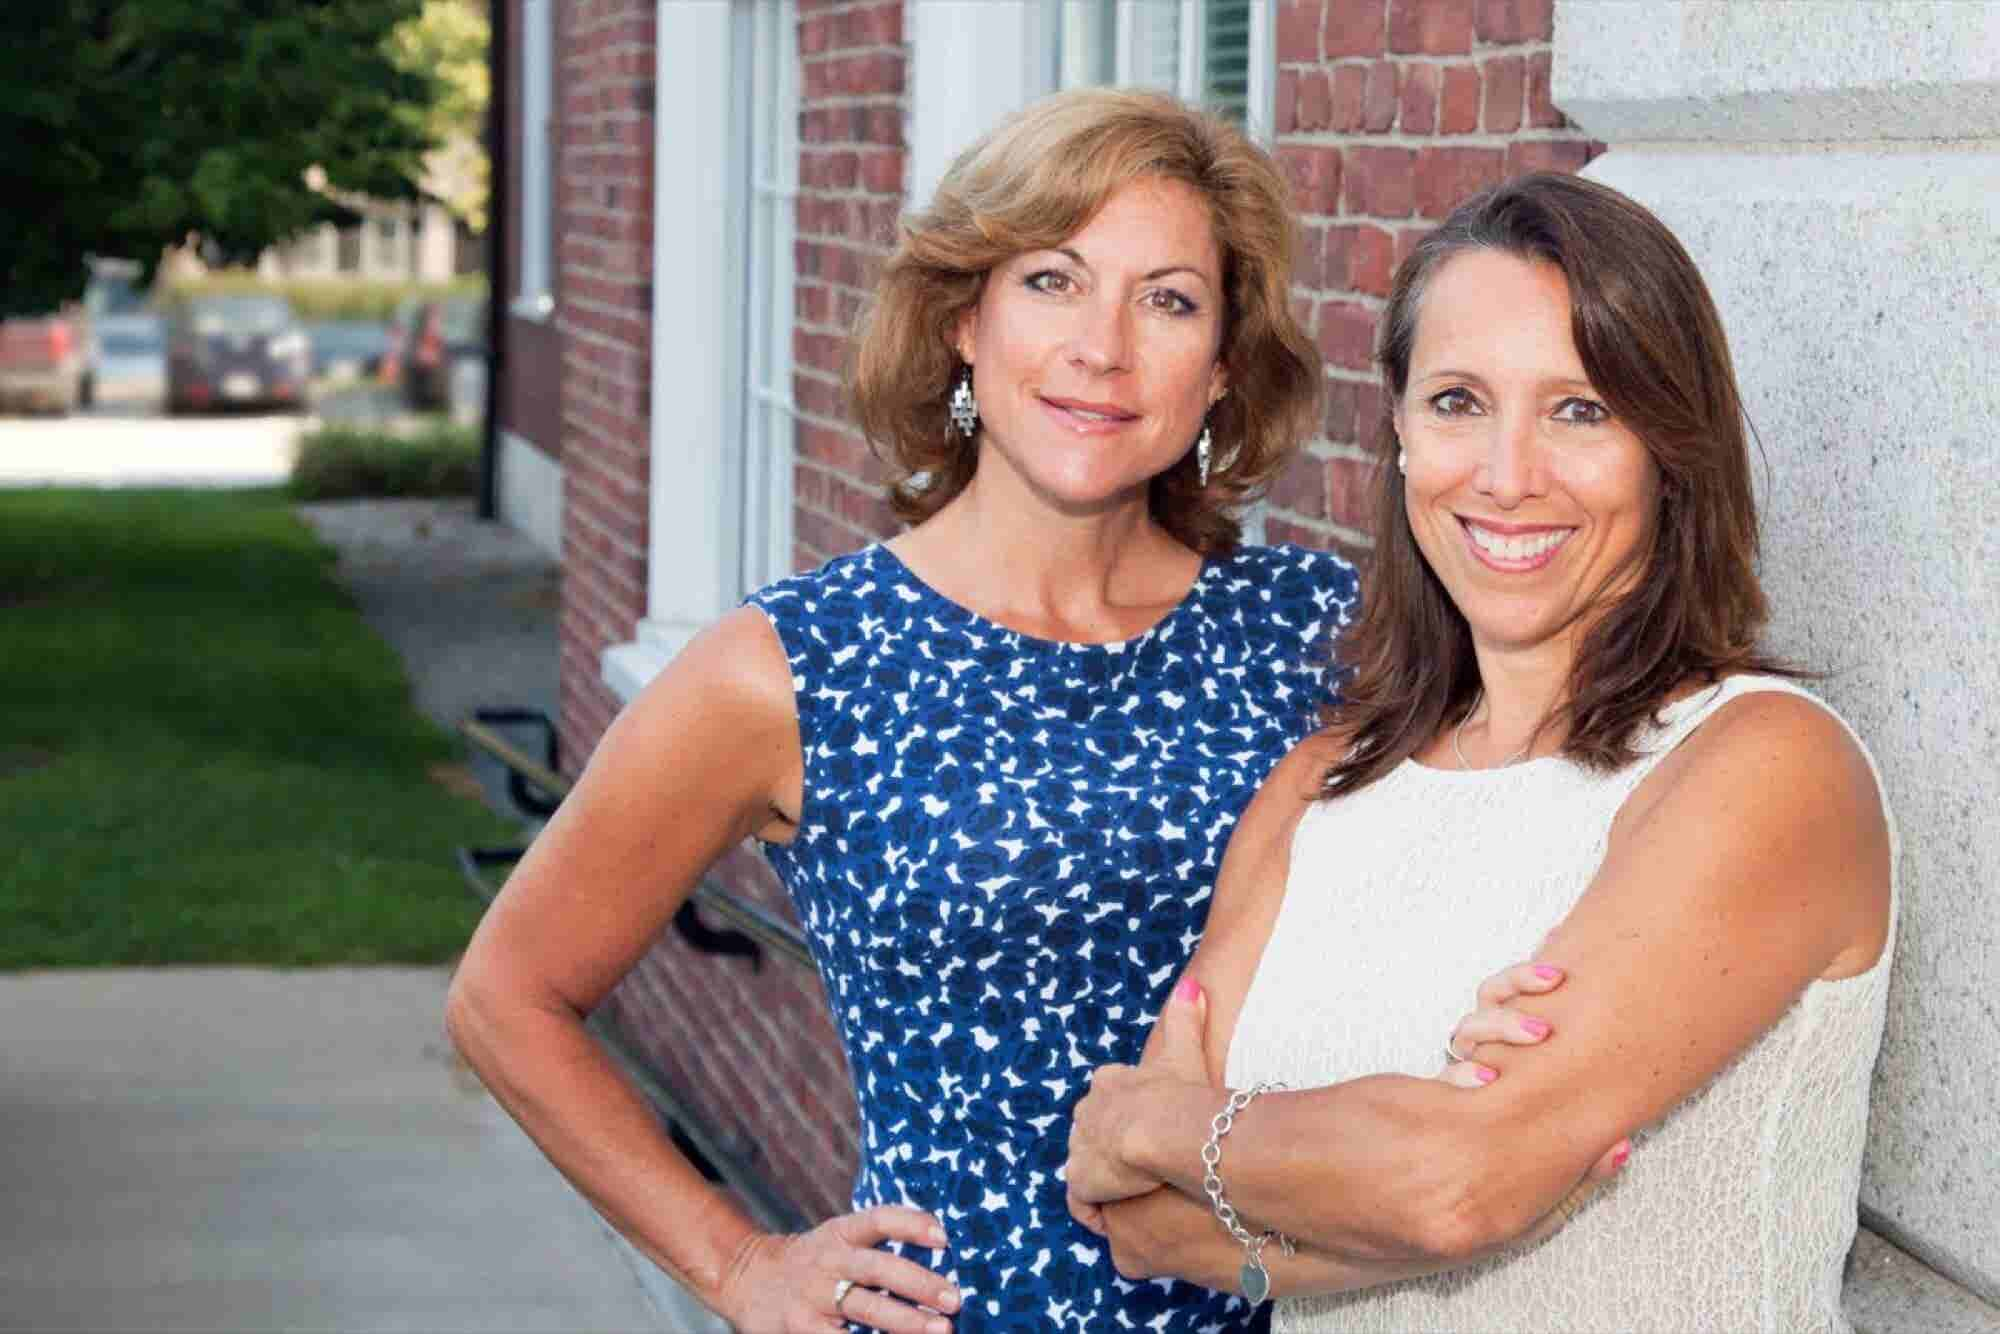 How These 2 Friends Disrupted the World of Bedding While Beating the Odds of Success